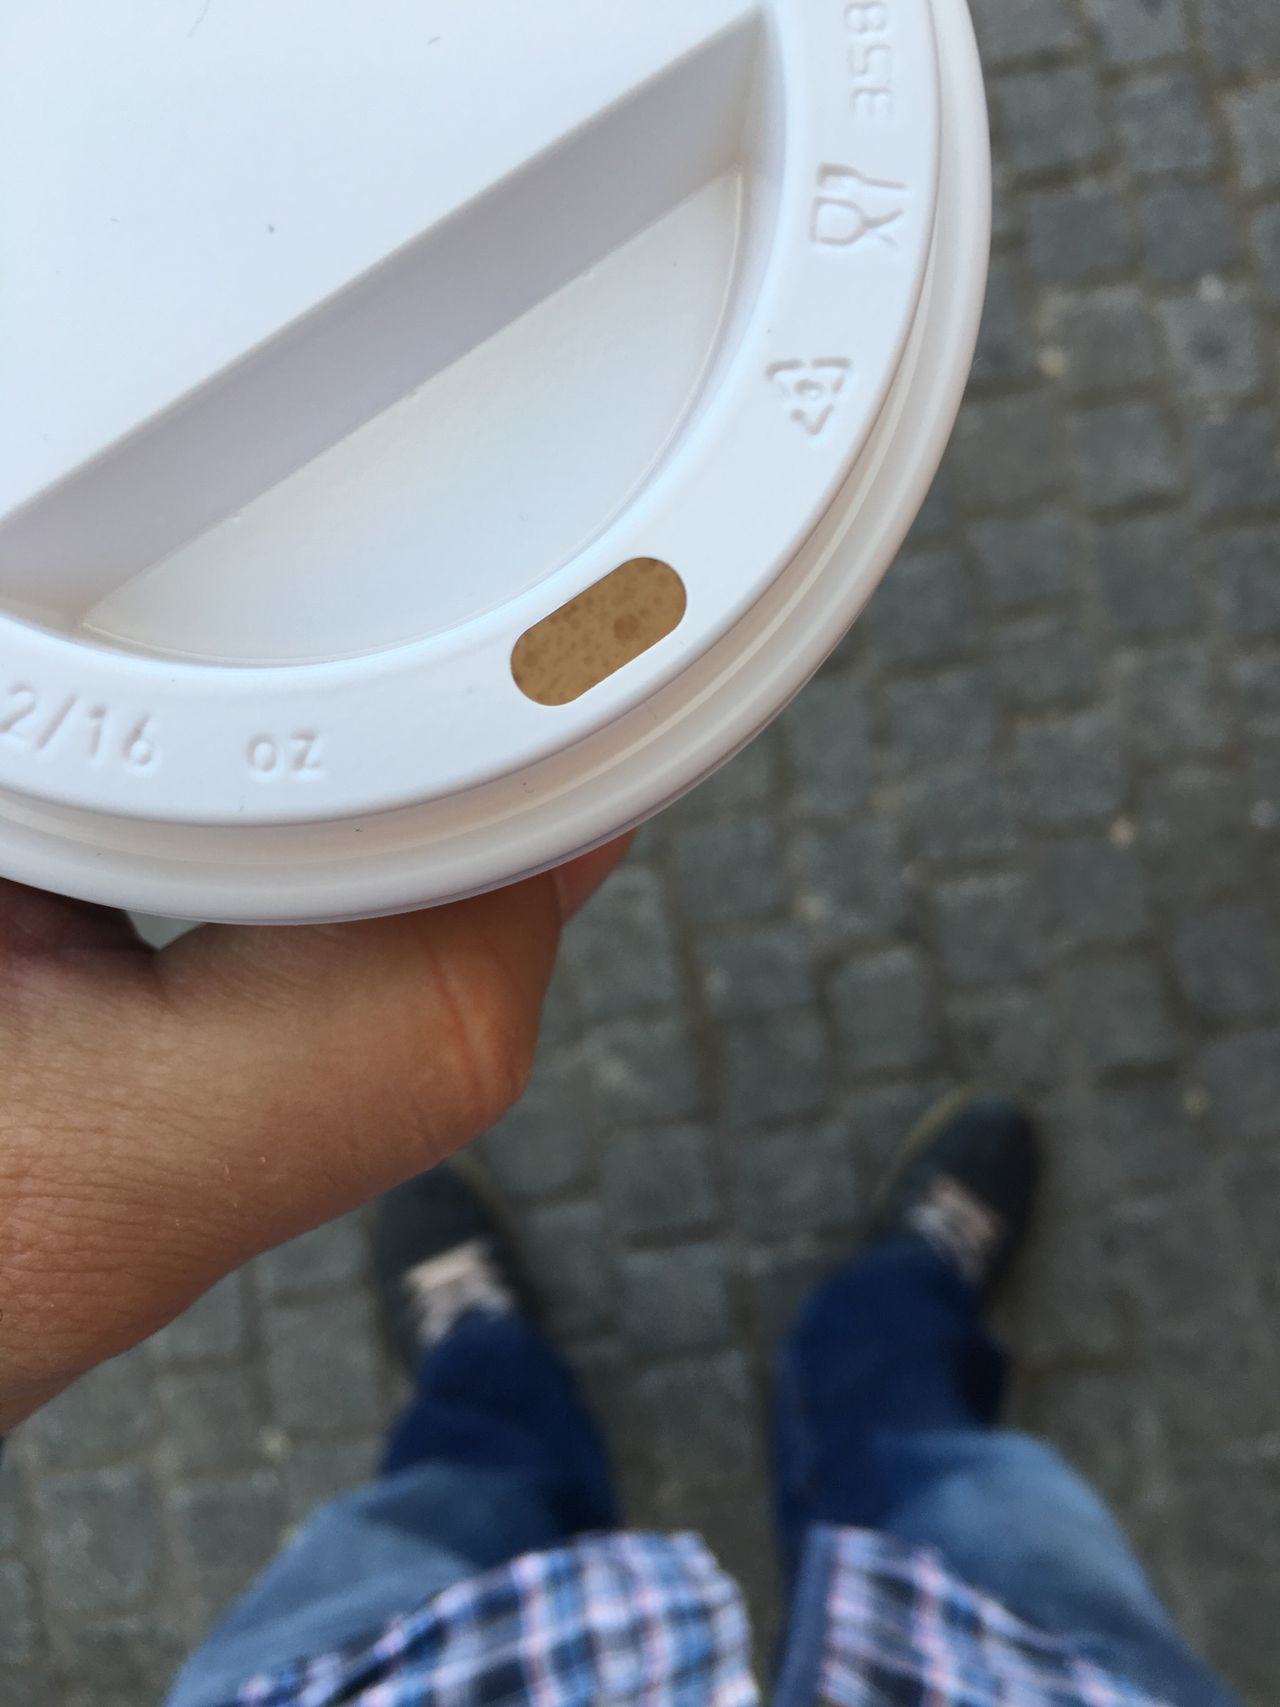 You know it… #Cappuccino